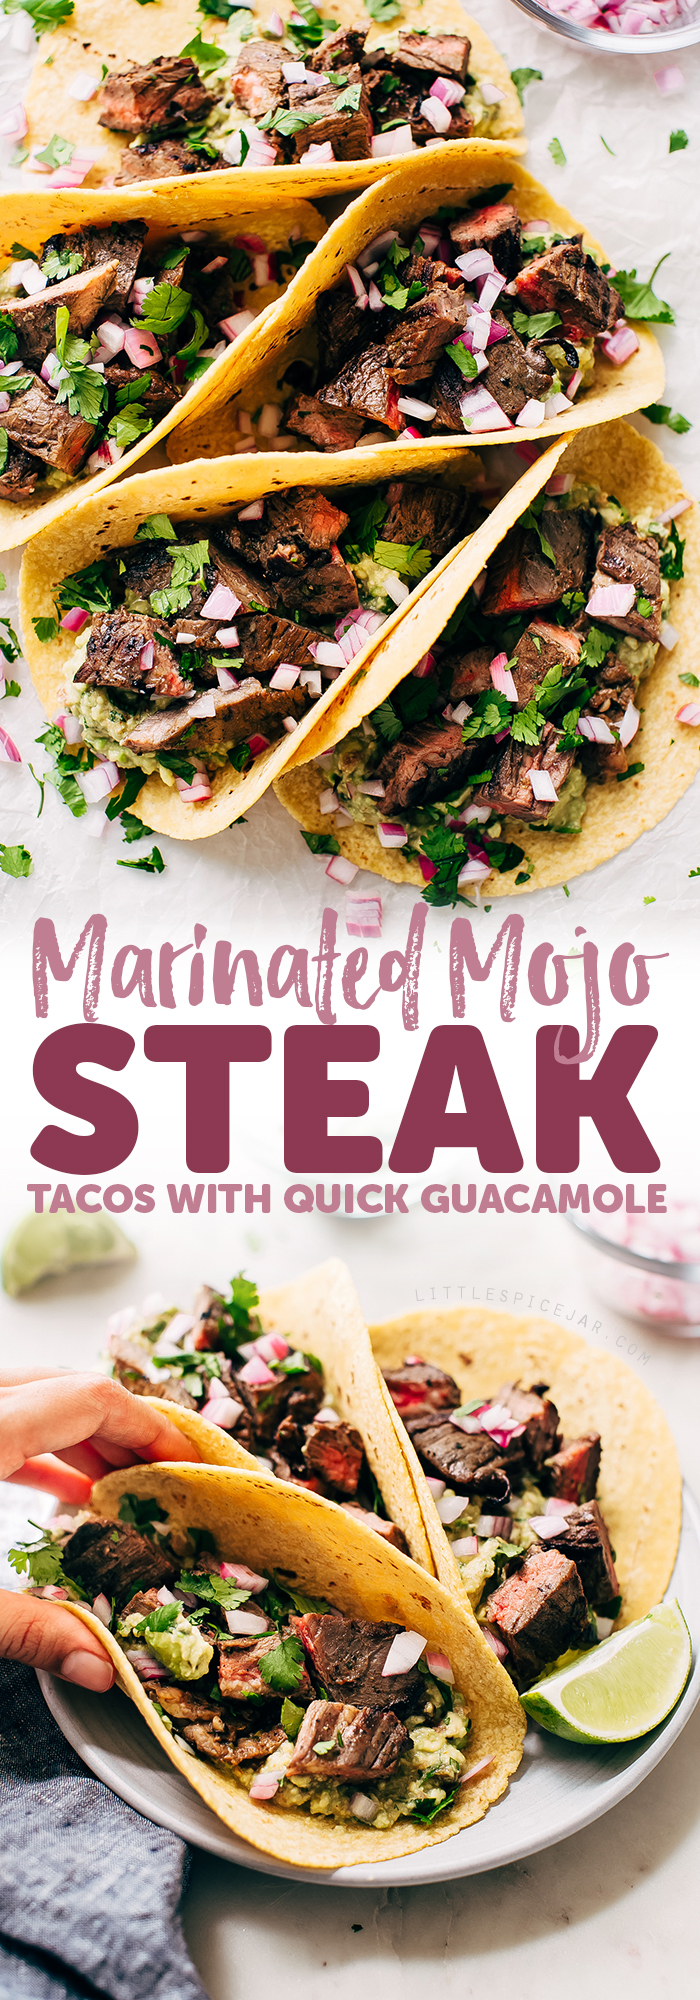 Marinated Mojo Steak Tacos with Quick Guac - Learn how to make the most tender mojo marinated steak tacos with just a few simple ingredients! #cincodemayo #steaktacos #tacos #beeftacos #steakmarinade | Littlespicejar.com